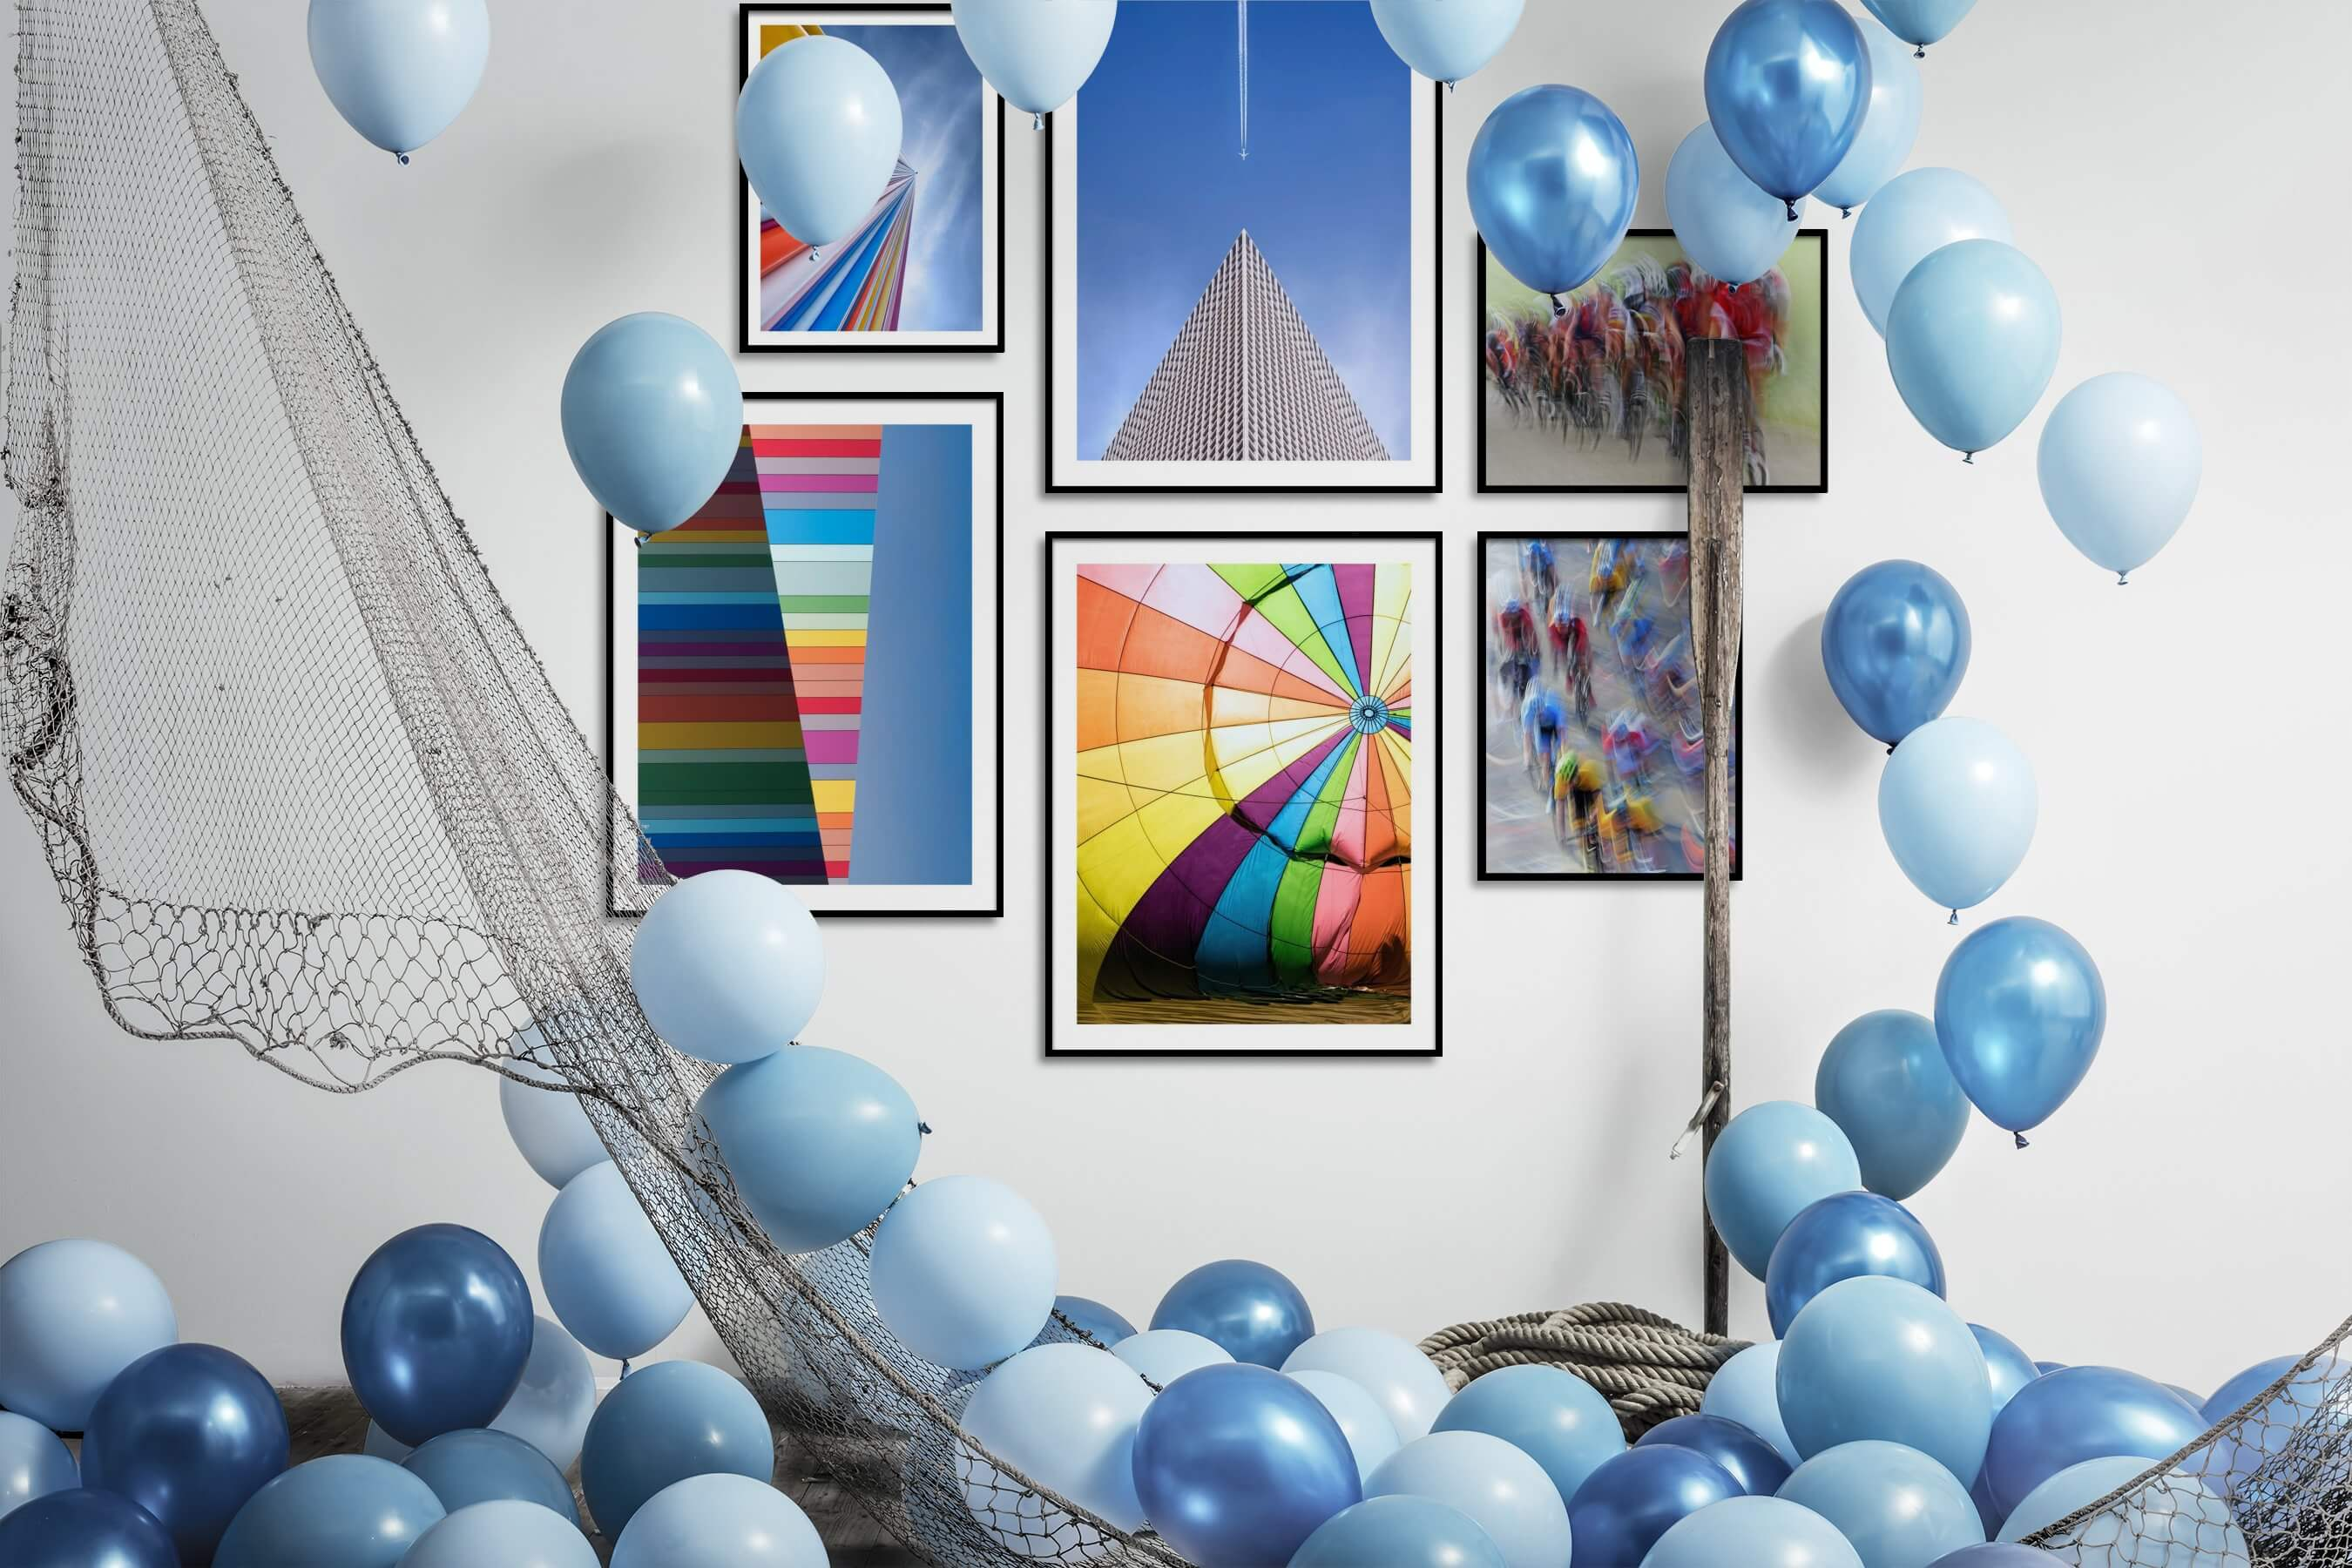 Gallery wall idea with six framed pictures arranged on a wall depicting For the Moderate, For the Minimalist, For the Maximalist, and Colorful